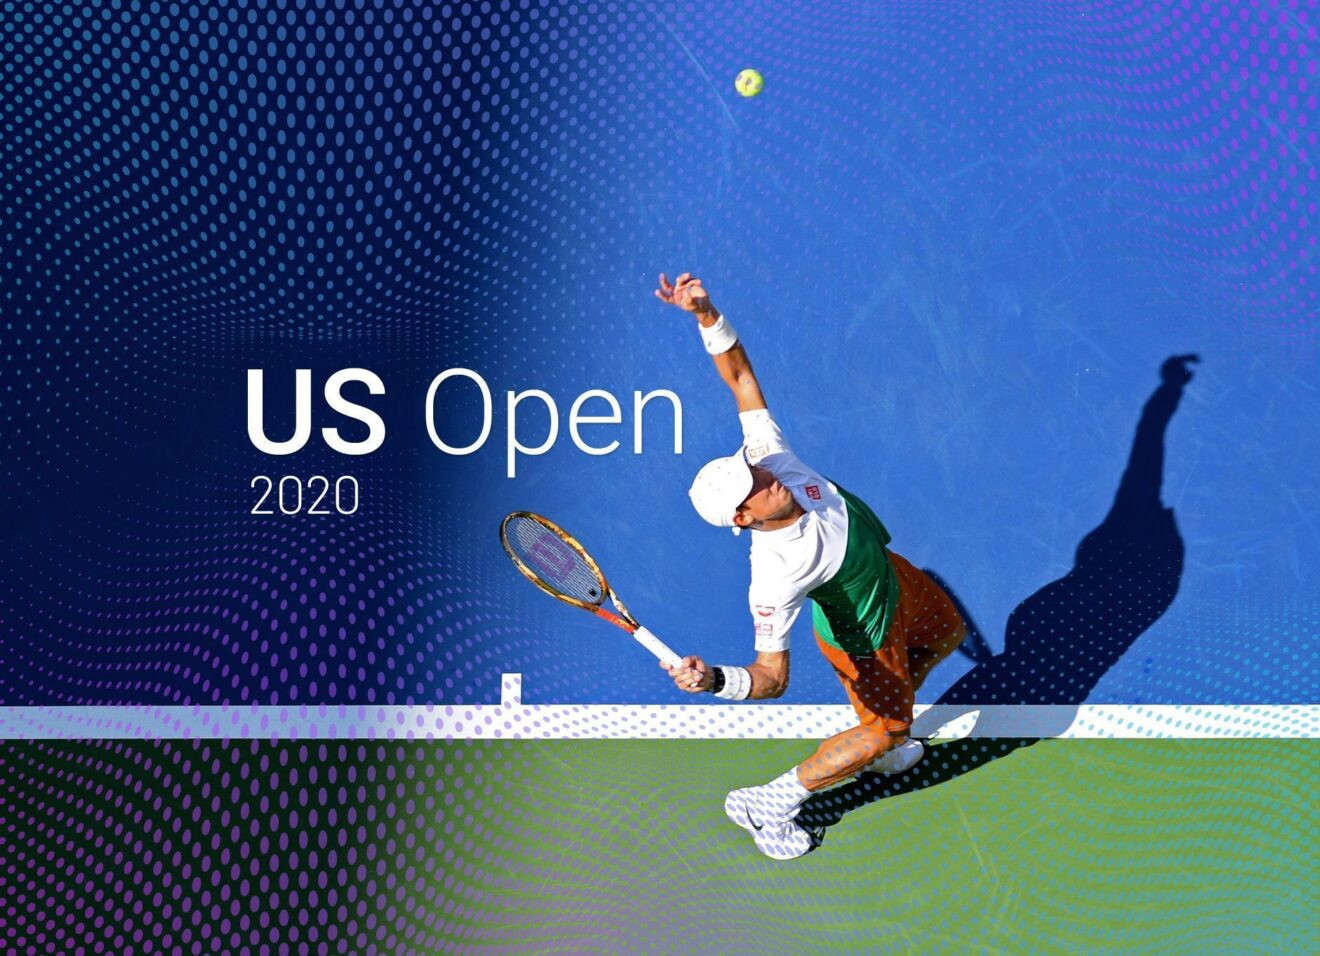 US OPEN 2020 preview